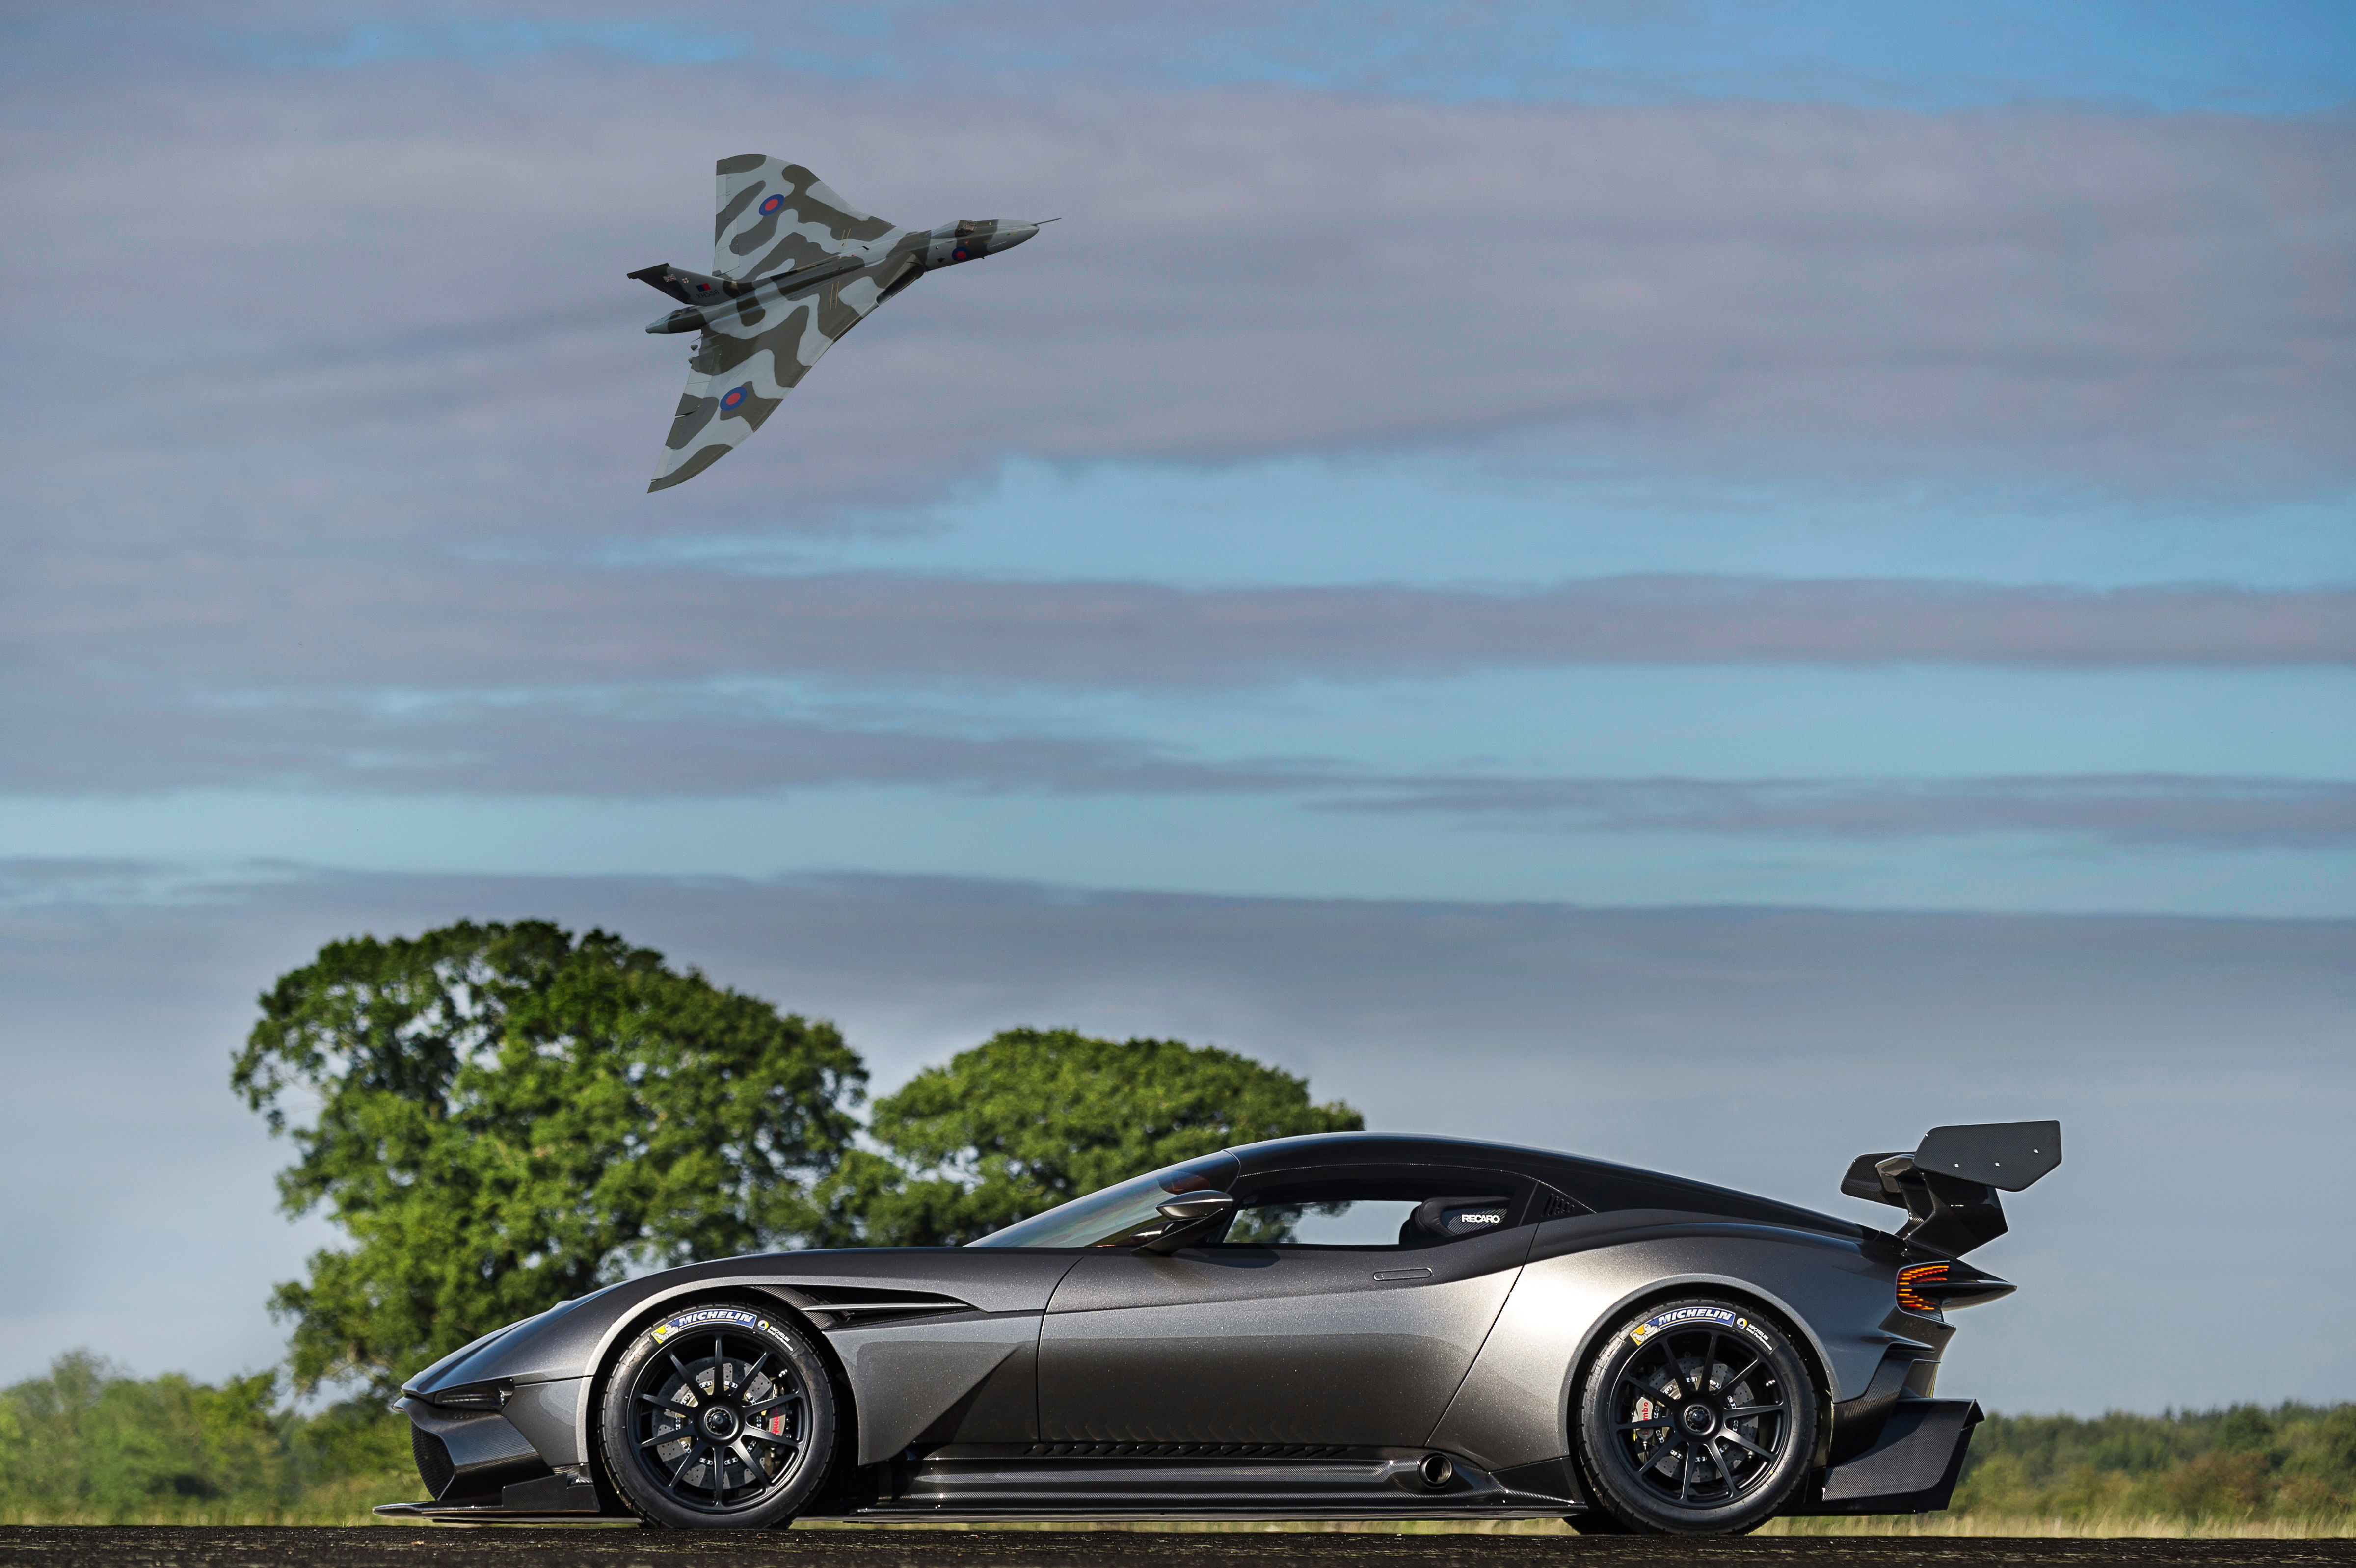 Vulcan Xh558 Met The Aston Martin Vulcan The Name Of Which Was Inspired By The Aircraft S Flight Over Aston Martin Headquarters Last Year Market Engineering